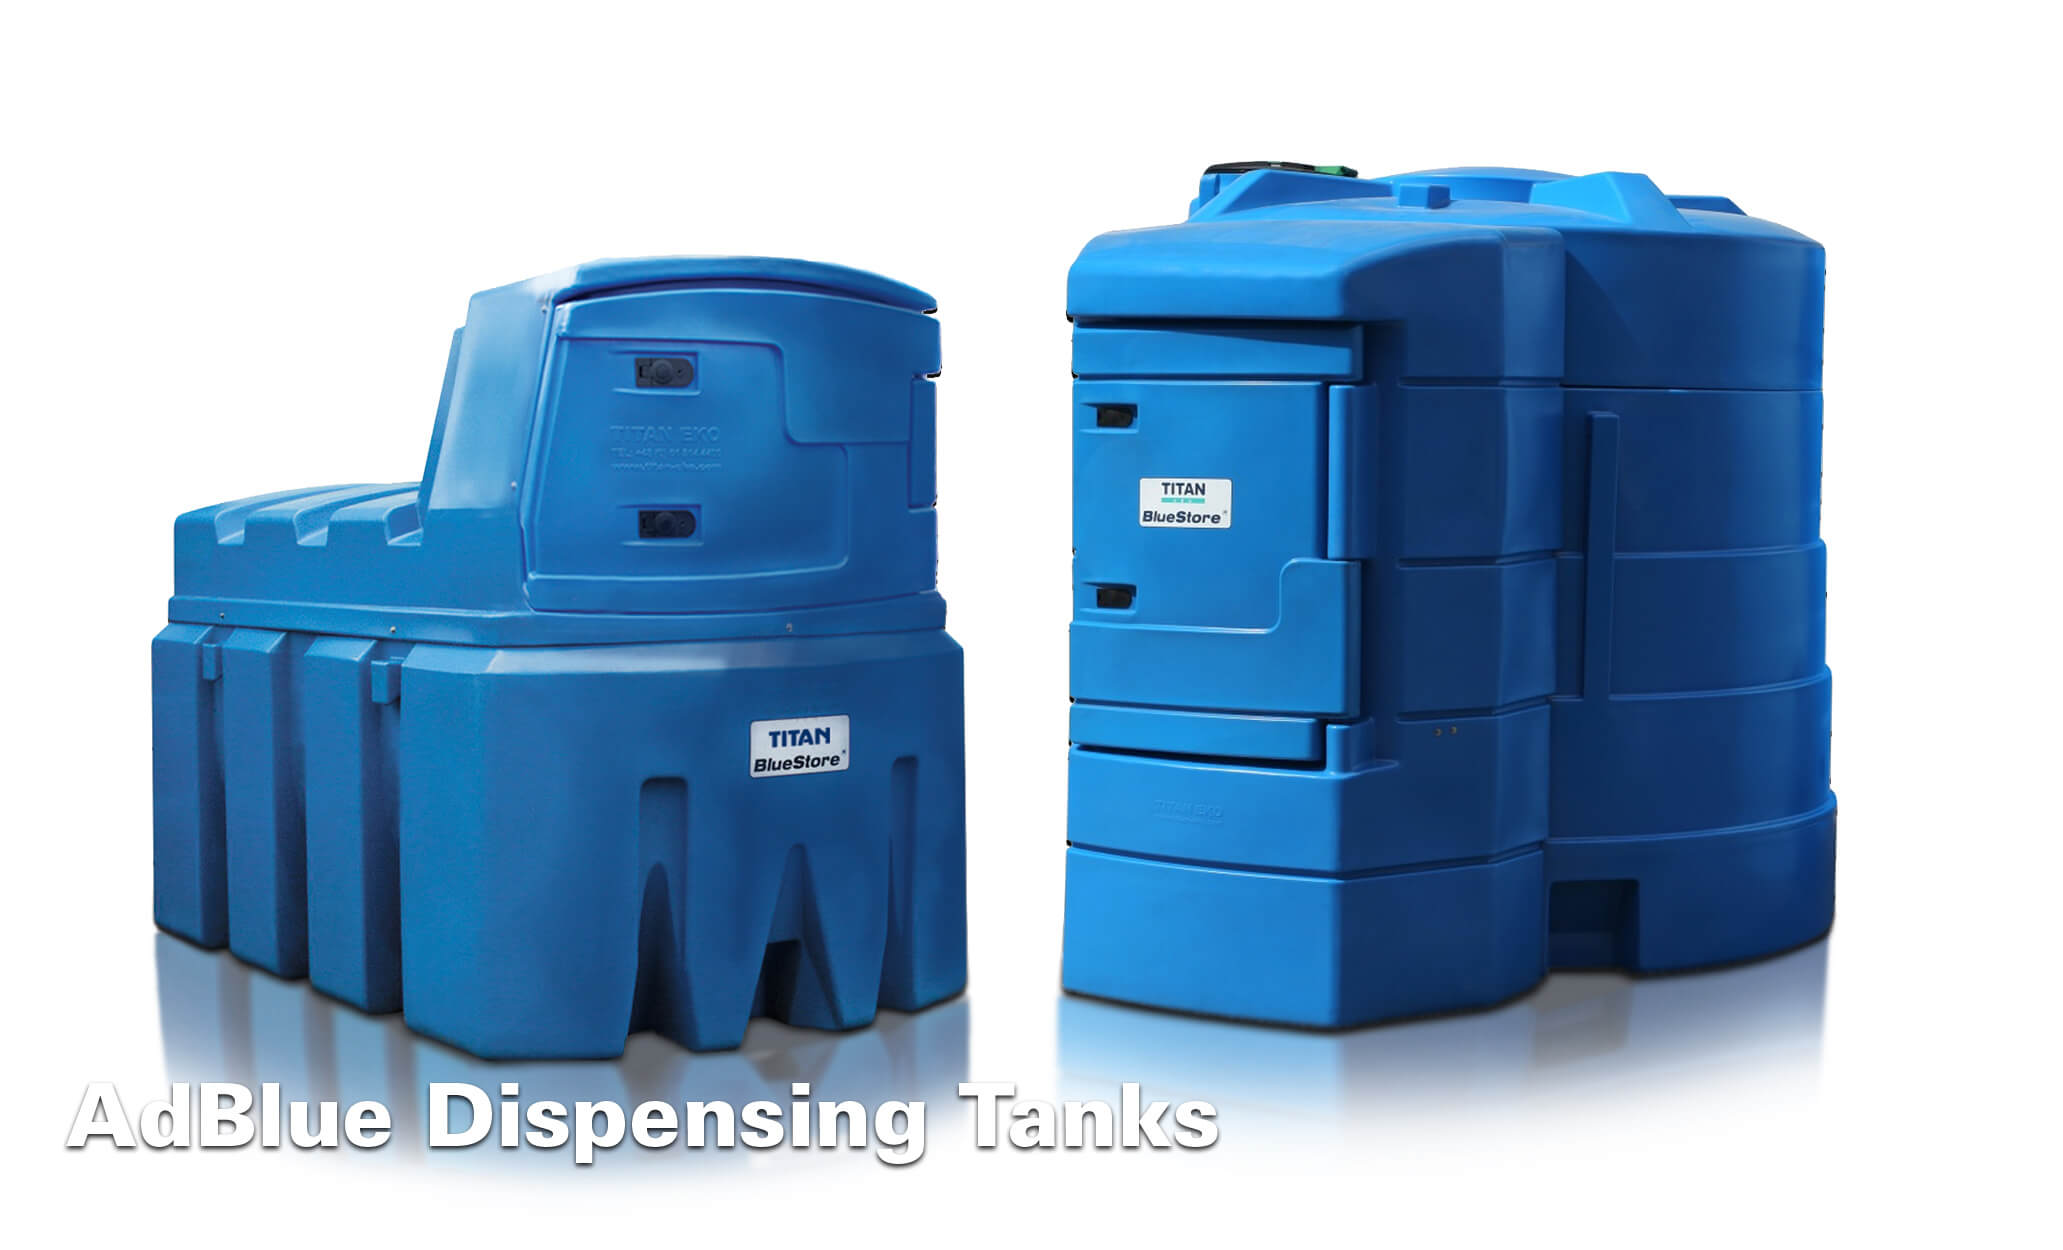 Adblue Dispensing Storage Tanks